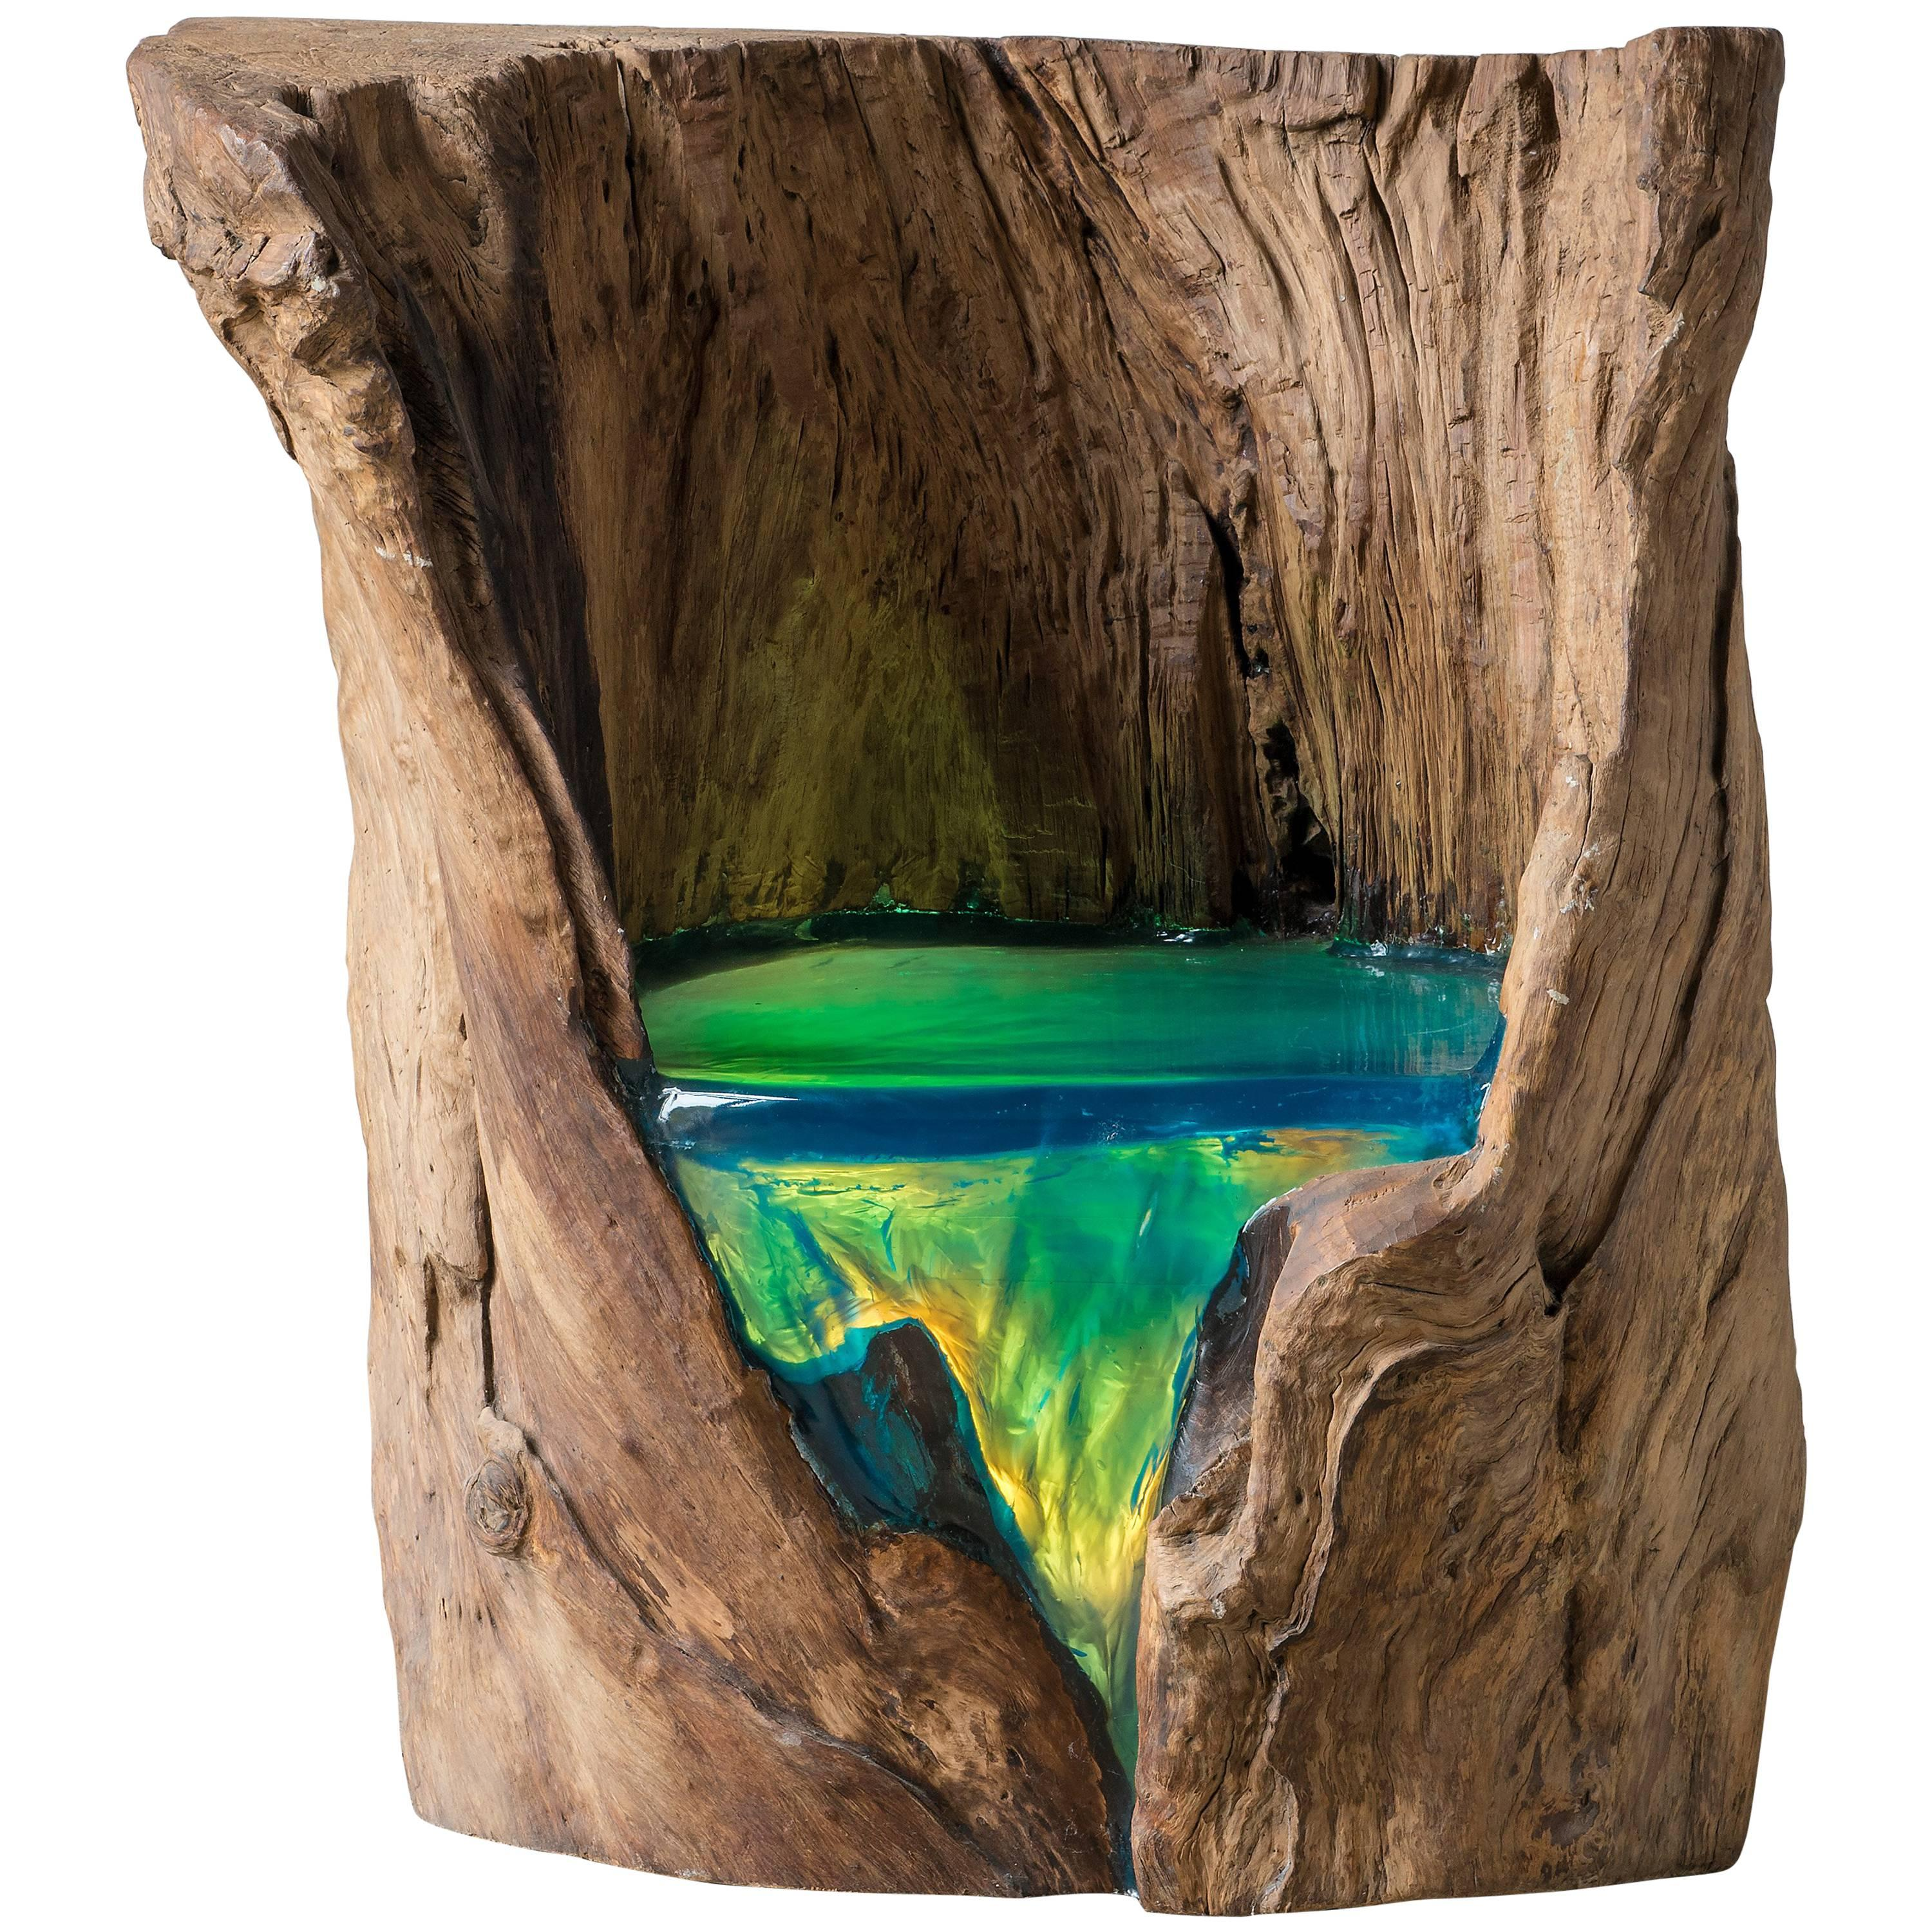 Organic Olive Tree Chair Made Of Stump And Resin 1